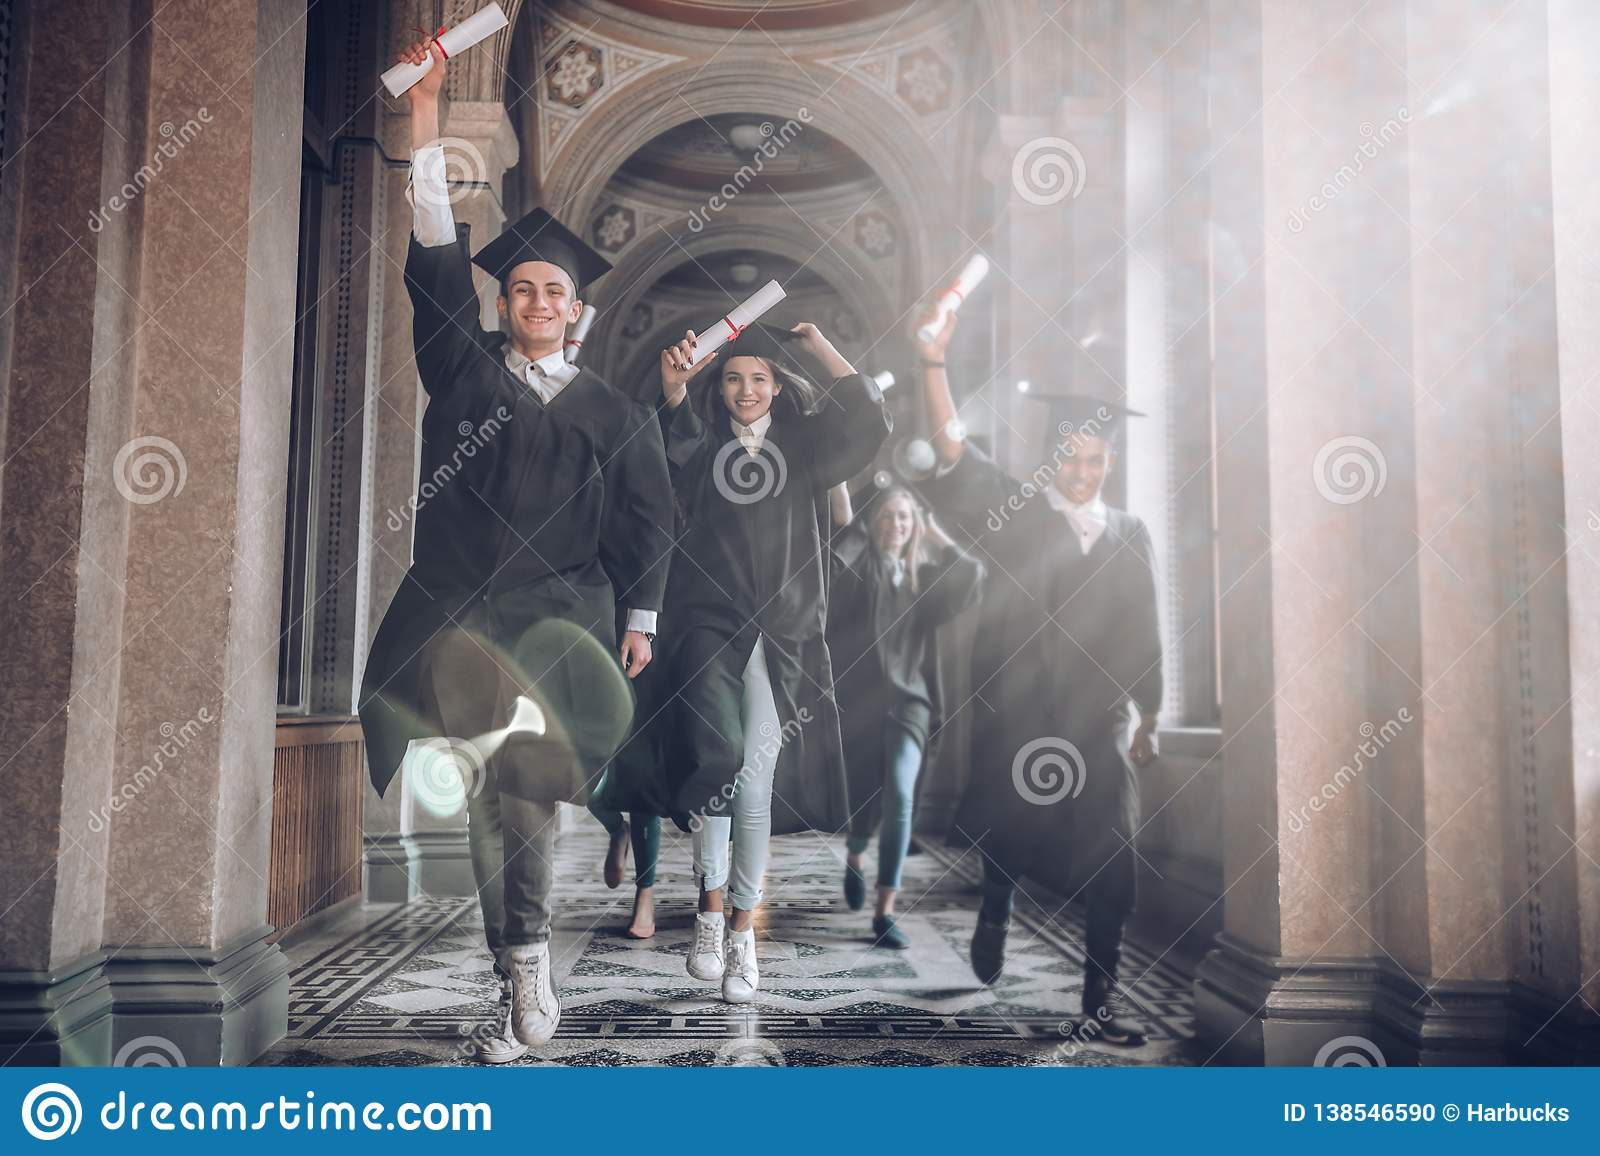 University was the best years of their lives!Group of smiling university students holding their diplomas and running after being